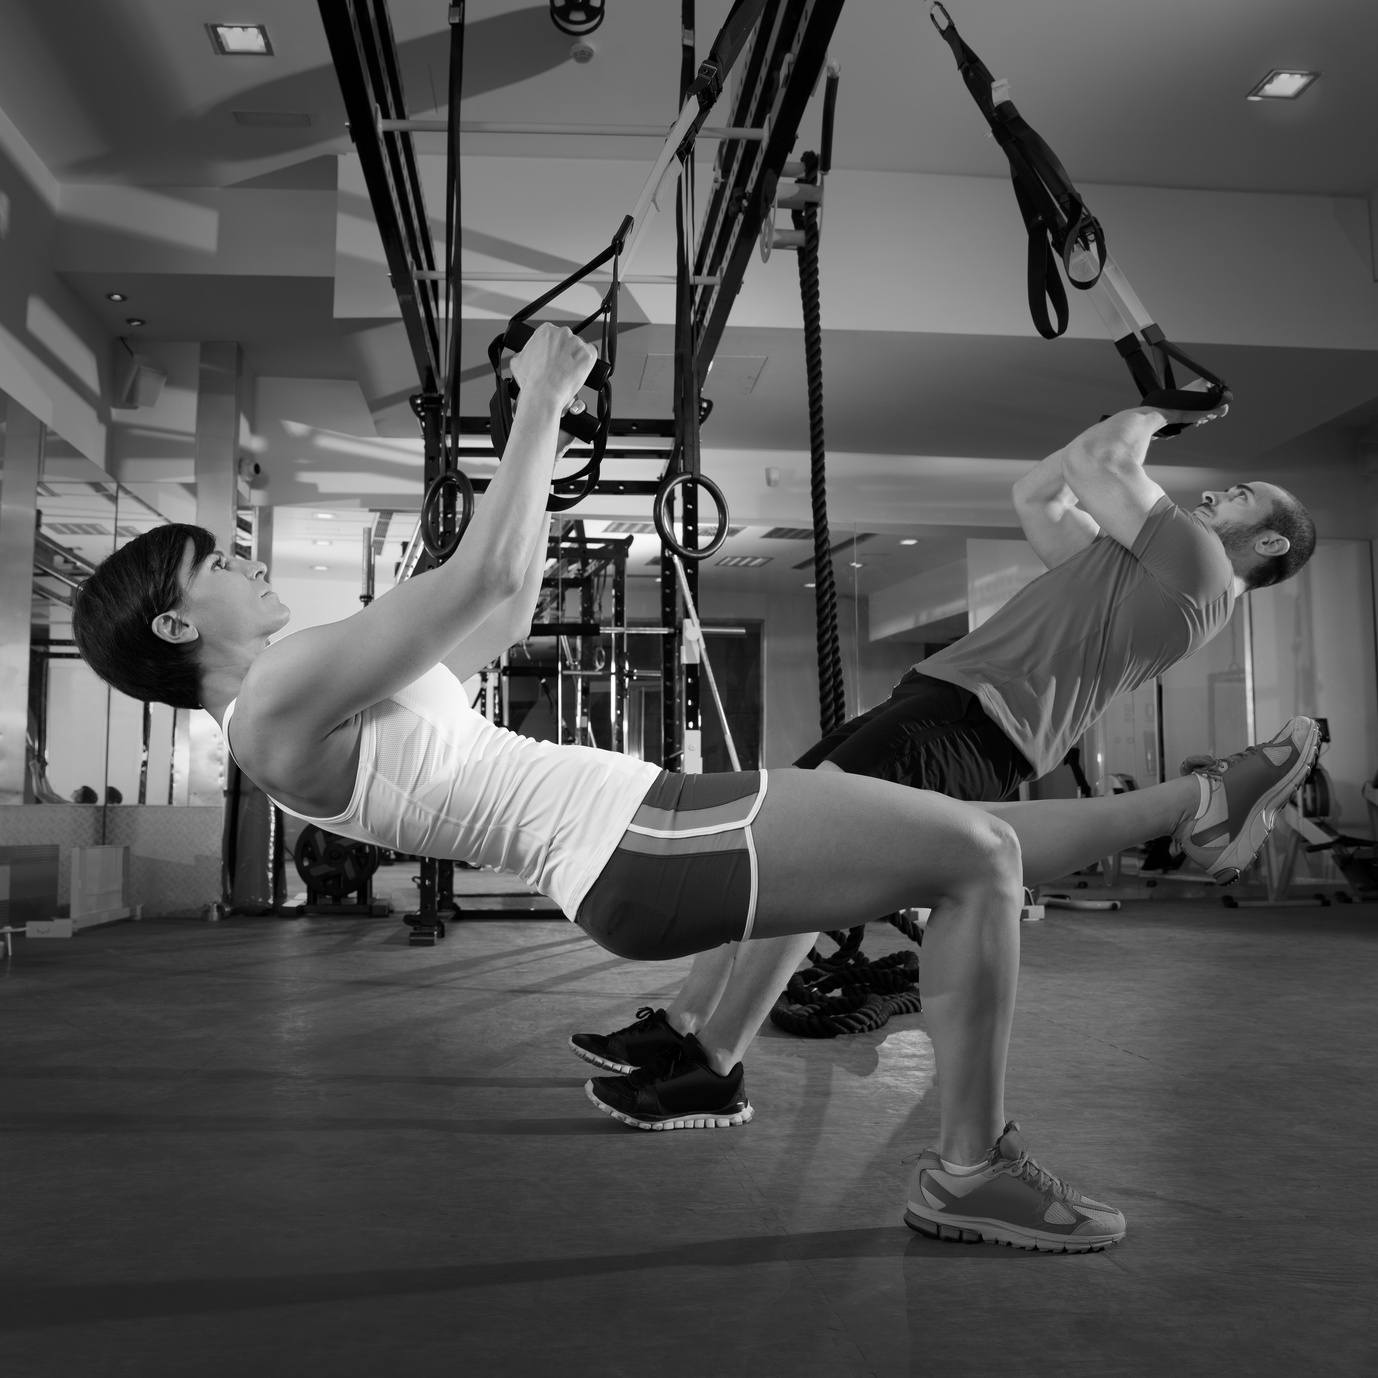 Sangle xt suspension trainer pas cher nutriwellness for Portique traction exterieur